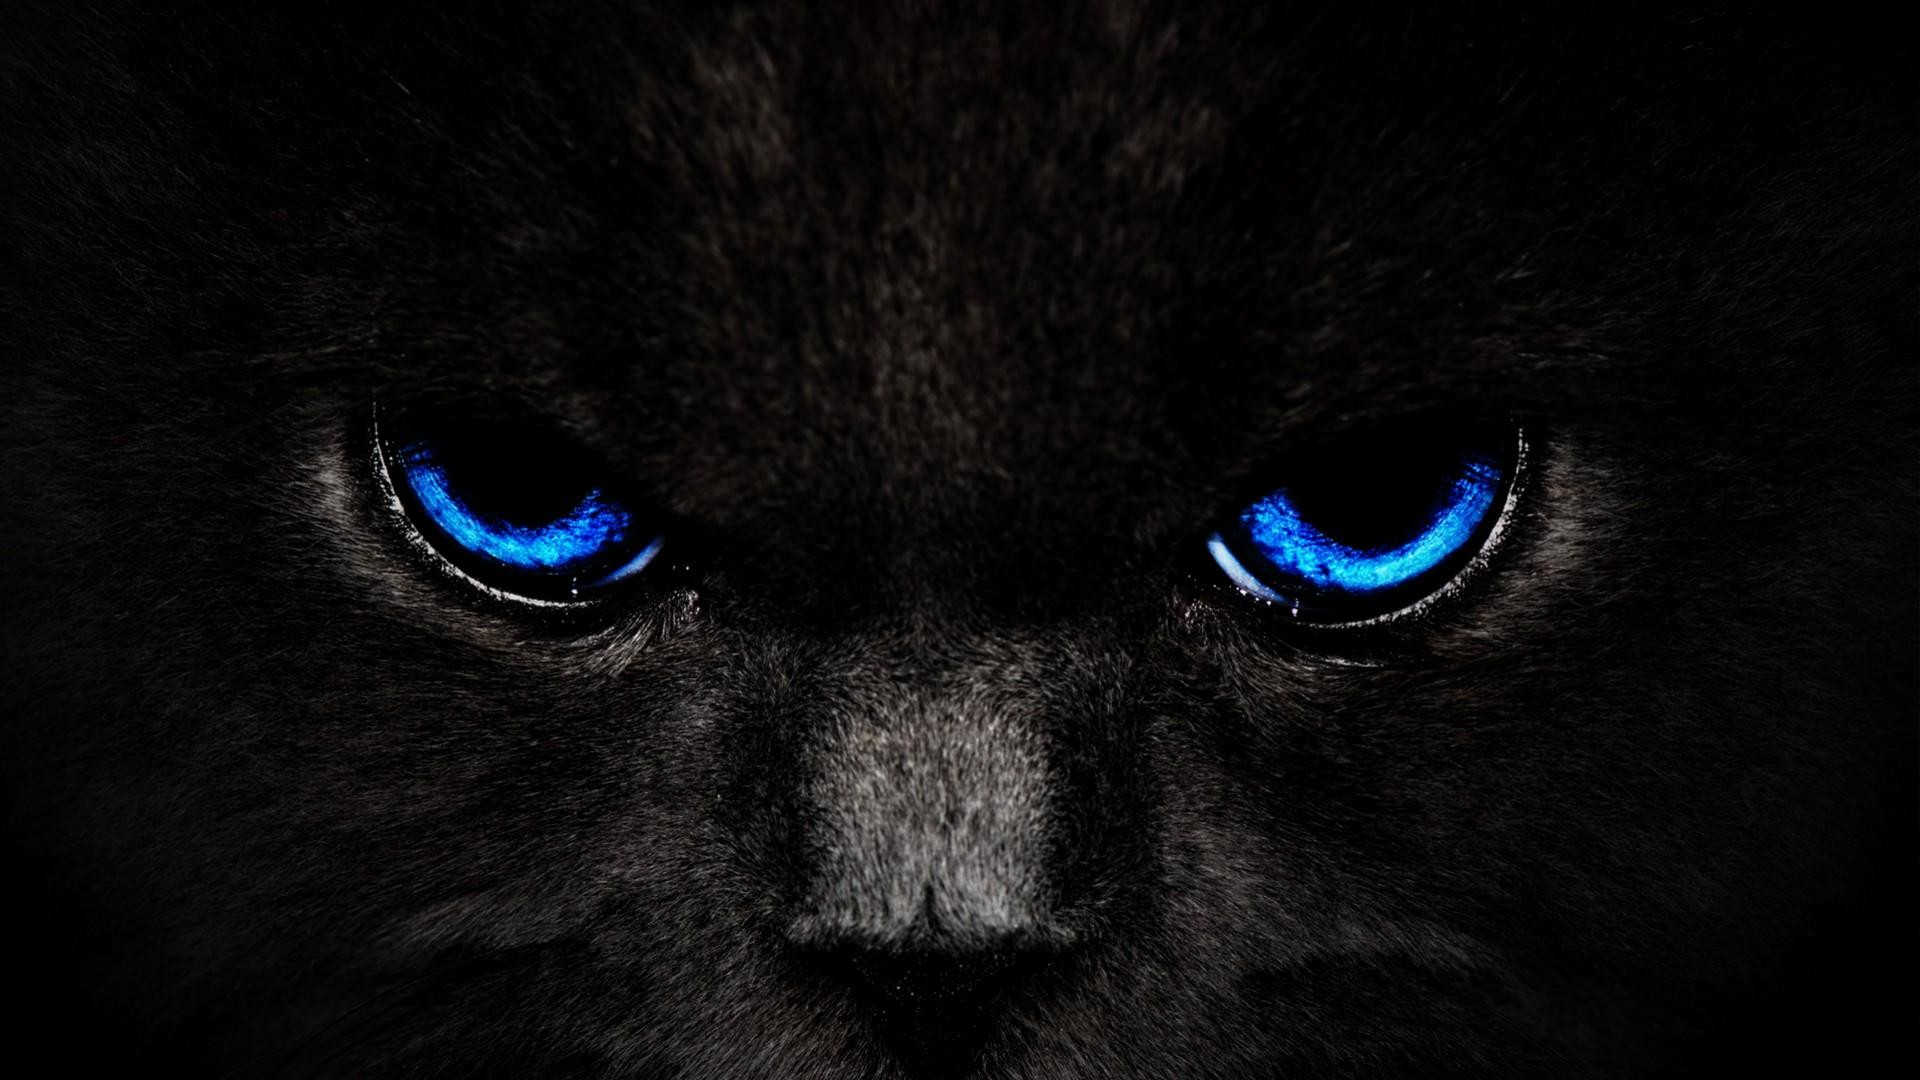 Black wallpaper hd download free stunning hd wallpapers for 1920x1080 black wallpapers cat jpg voltagebd Image collections